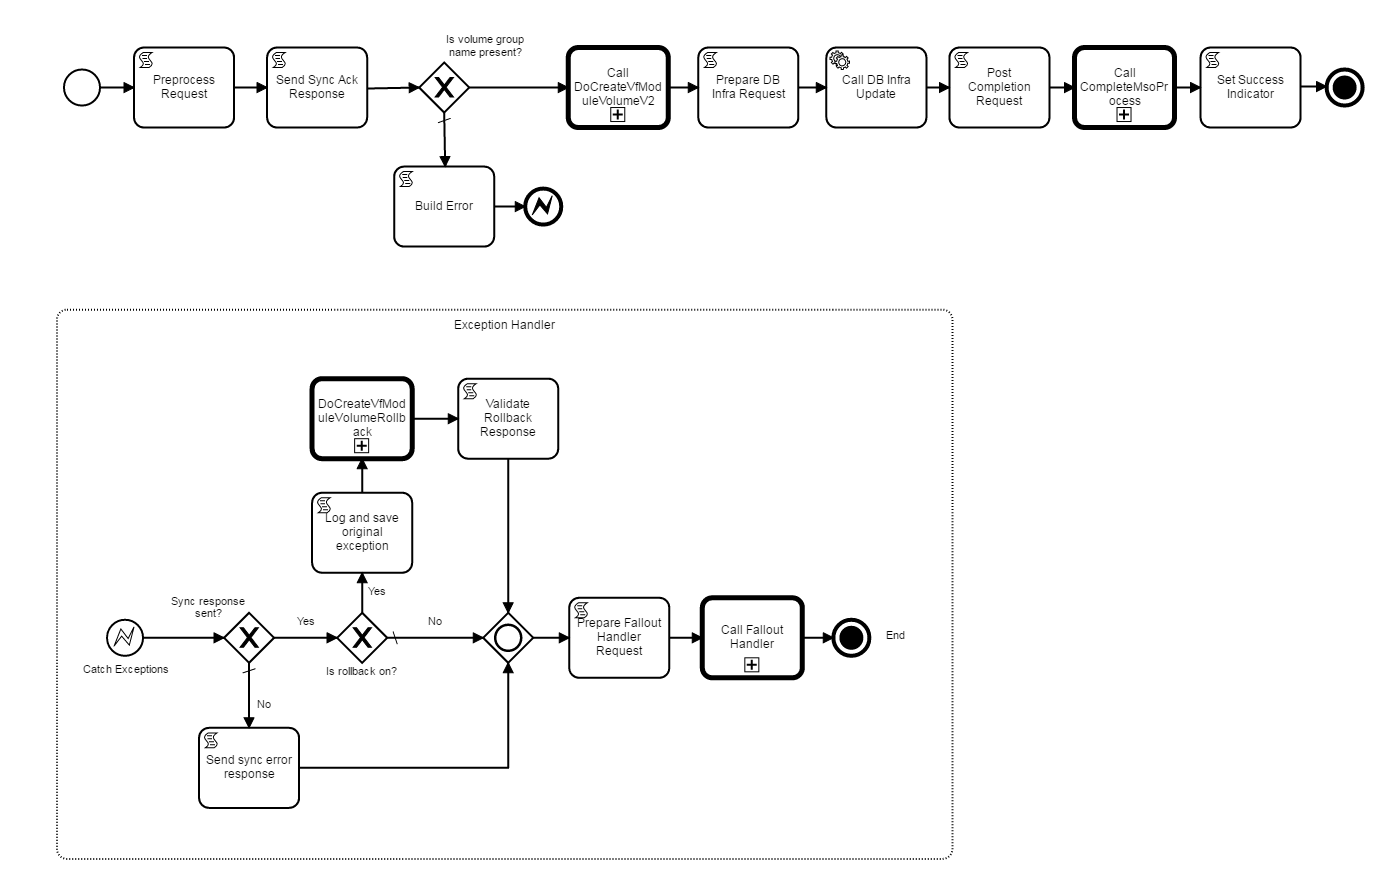 Bpmn Main Process Flows - Developer Wiki